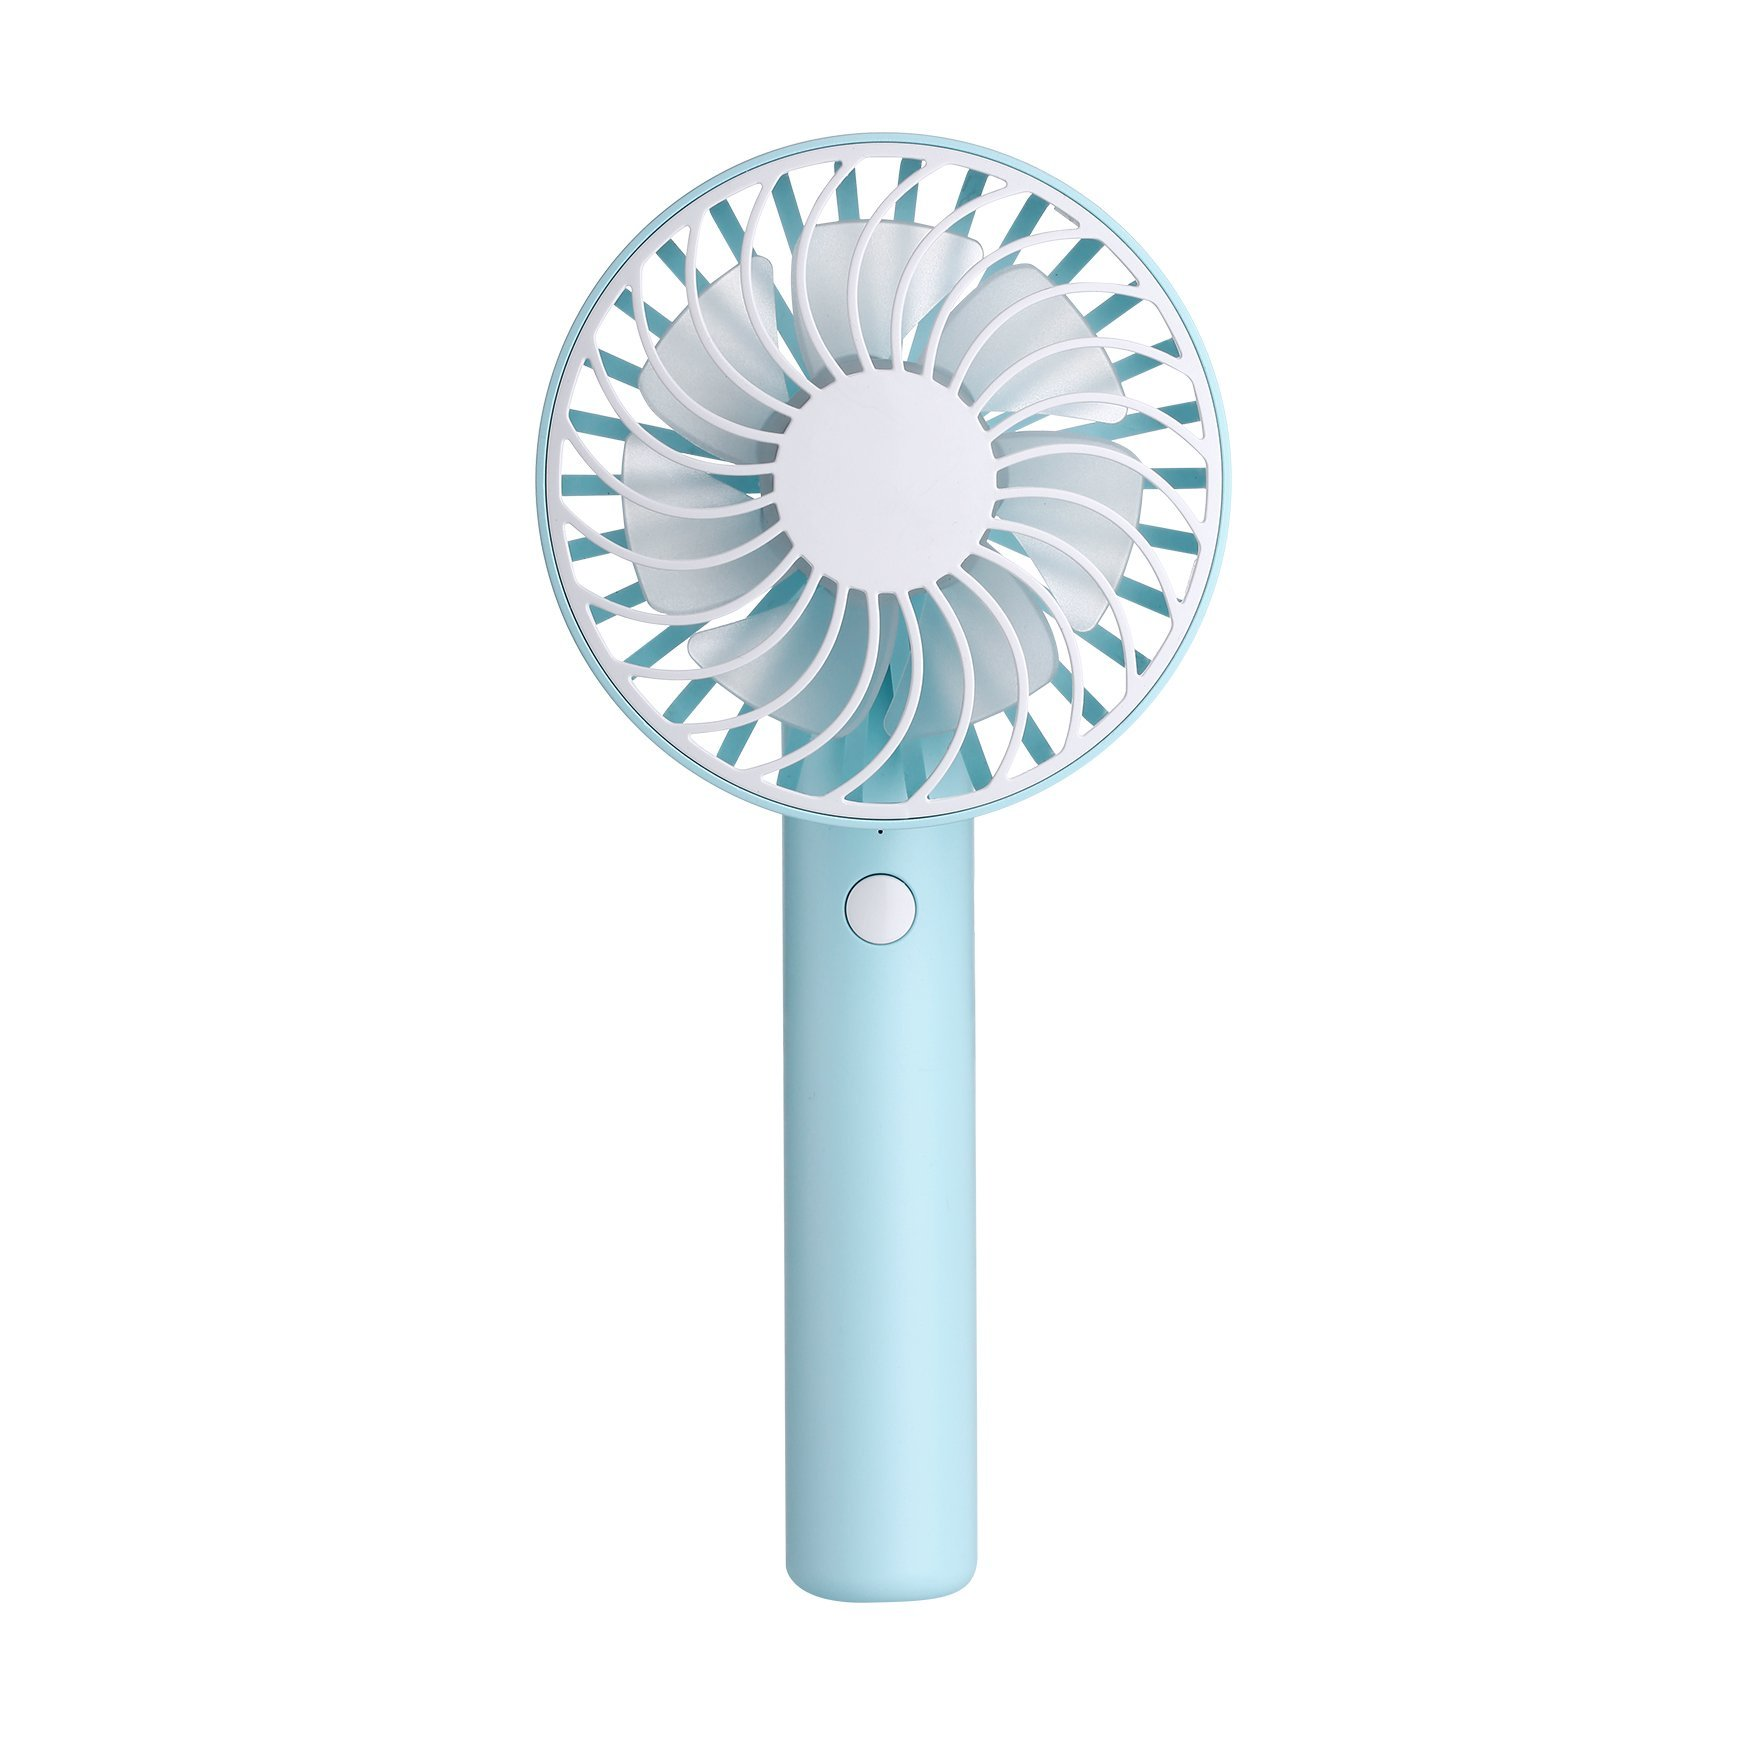 Mini Handheld Fan, YiMiky Foldable Personal Portable Desktop Desktop Cooling Fan with USB Rechargeable Battery Electric Fan for Office Outdoor Home Travel (Blue)